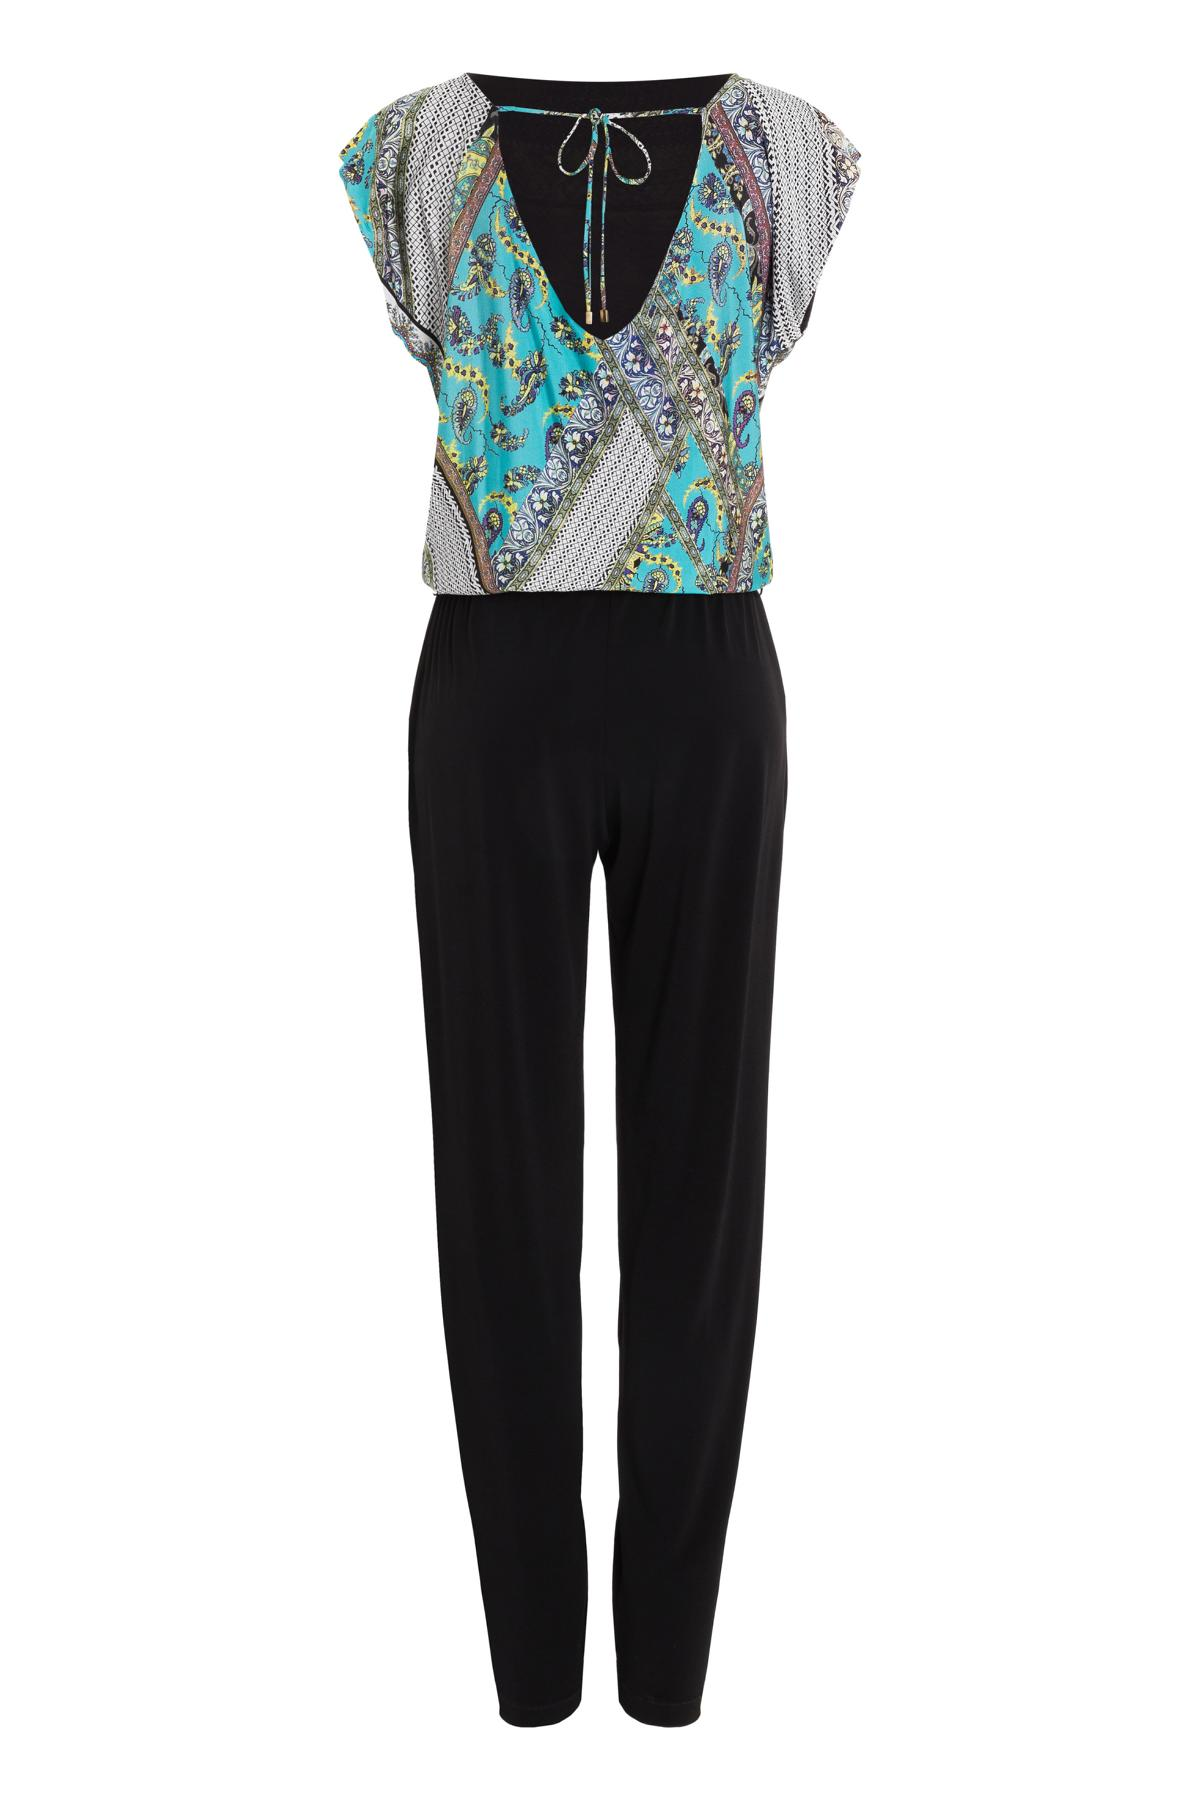 PRODUCT_PICTURE_PRE_7Ana Alcazar Jumpsuit Setpina PRODUCT_PICTURE_SUF_7